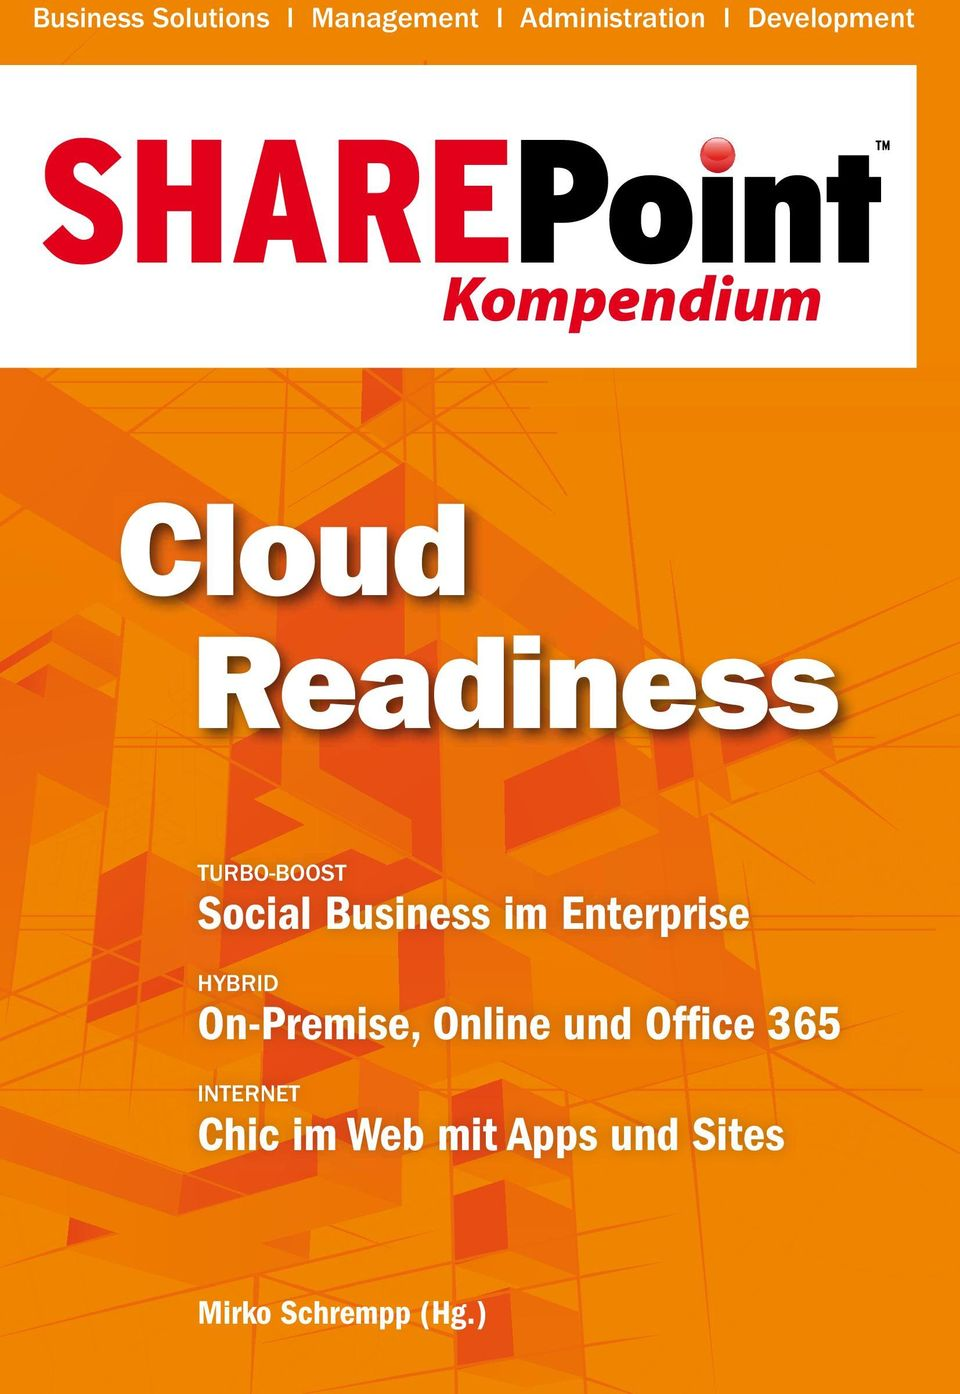 Business im Enterprise HYBRID On-Premise, Online und